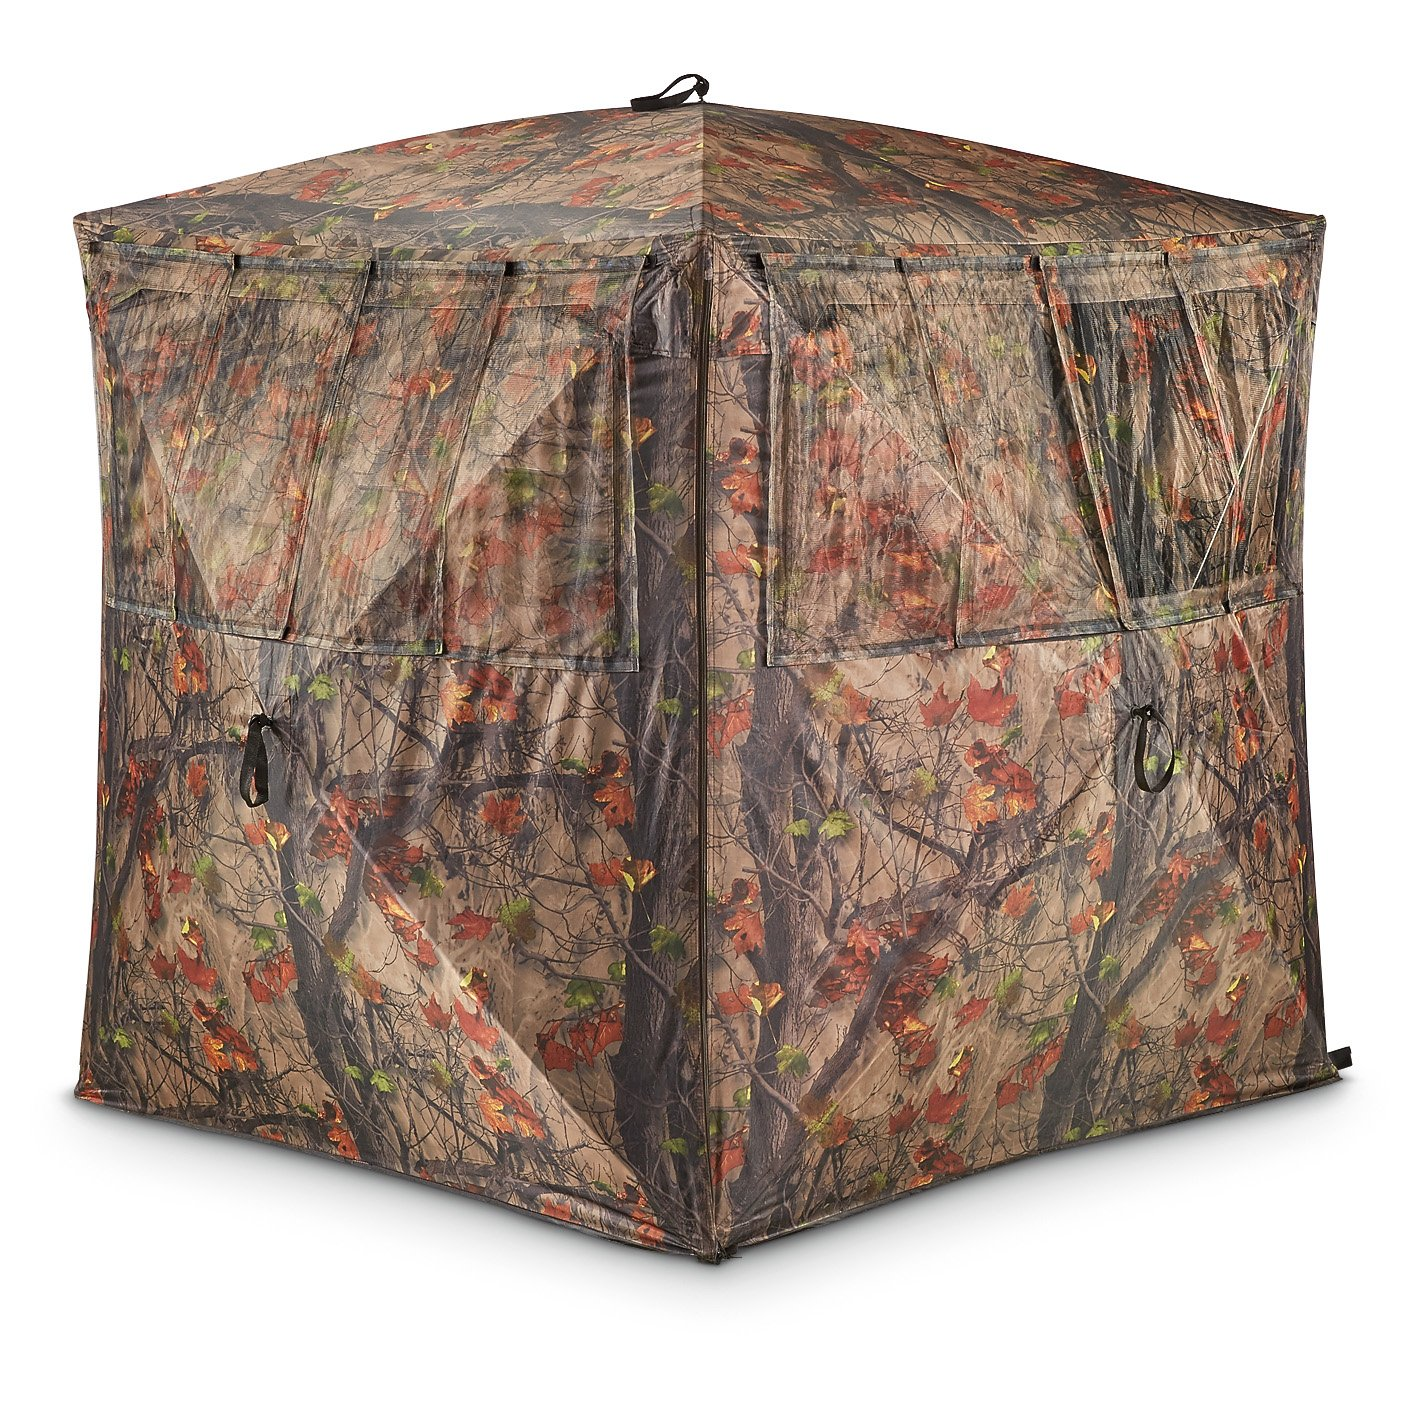 hunting blinds cheap guides blind get waterfowl tricc line on box shopping man deals at find black inch quotations person